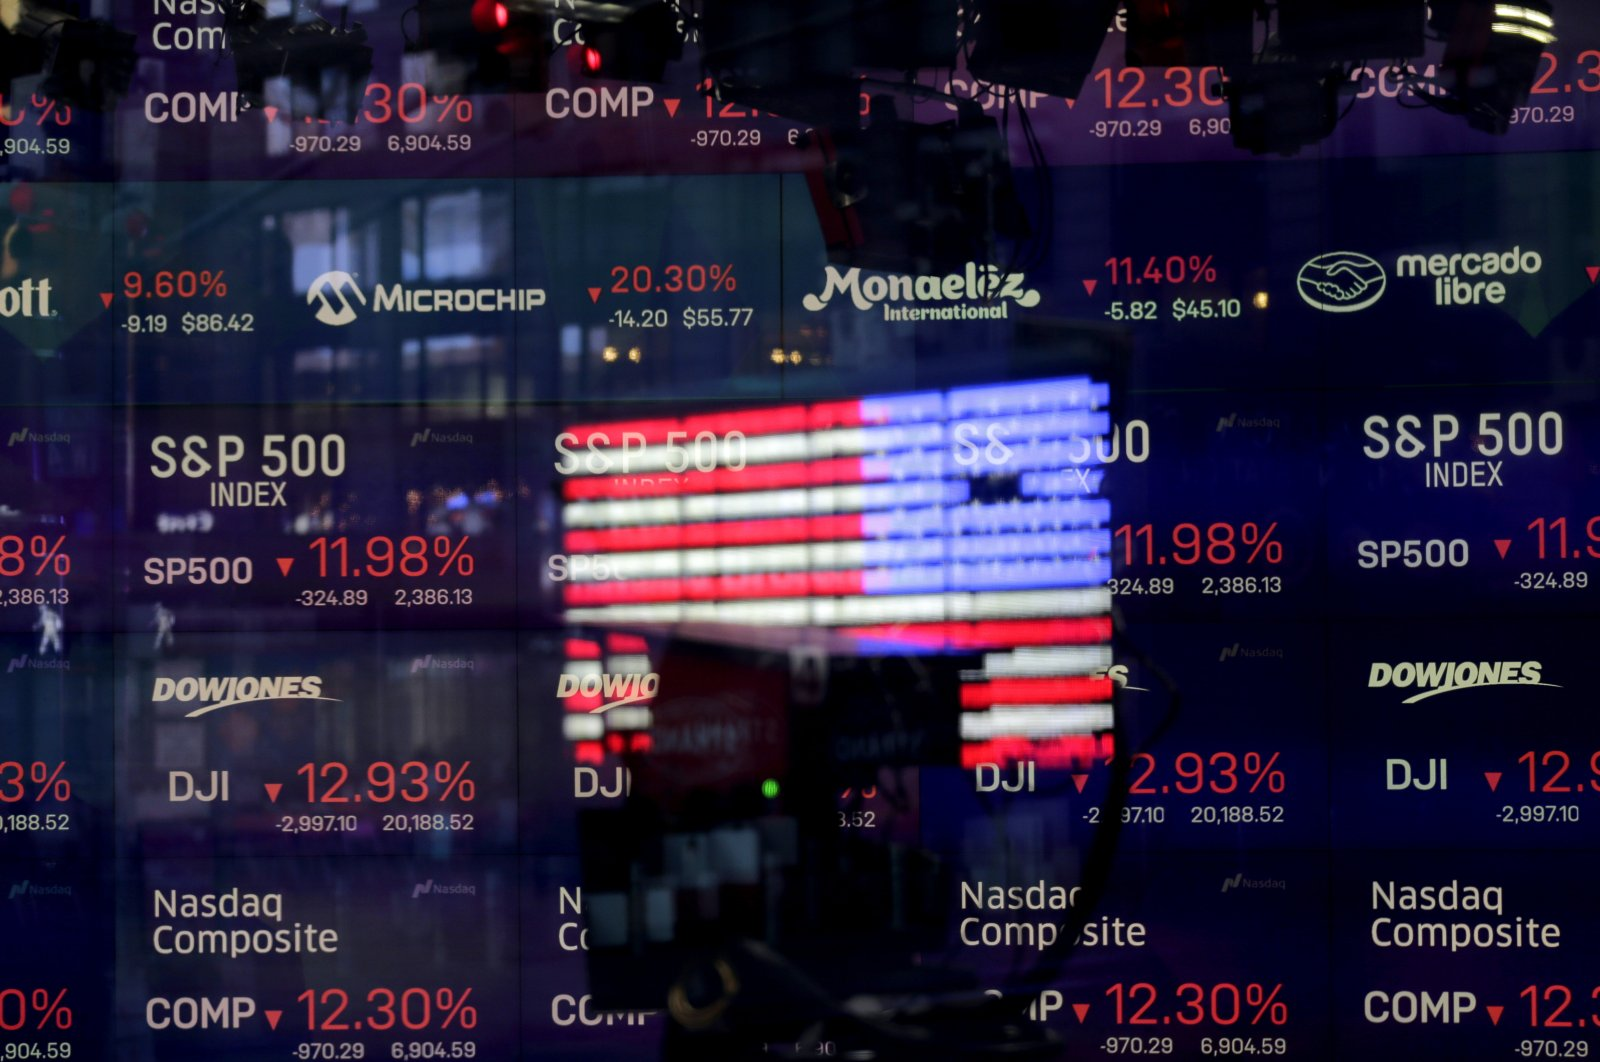 The U.S. flag is reflected in the window of the Nasdaq studio, which displays indices and stocks down, in Times Square, New York City, March 16, 2020. (AP Photo)